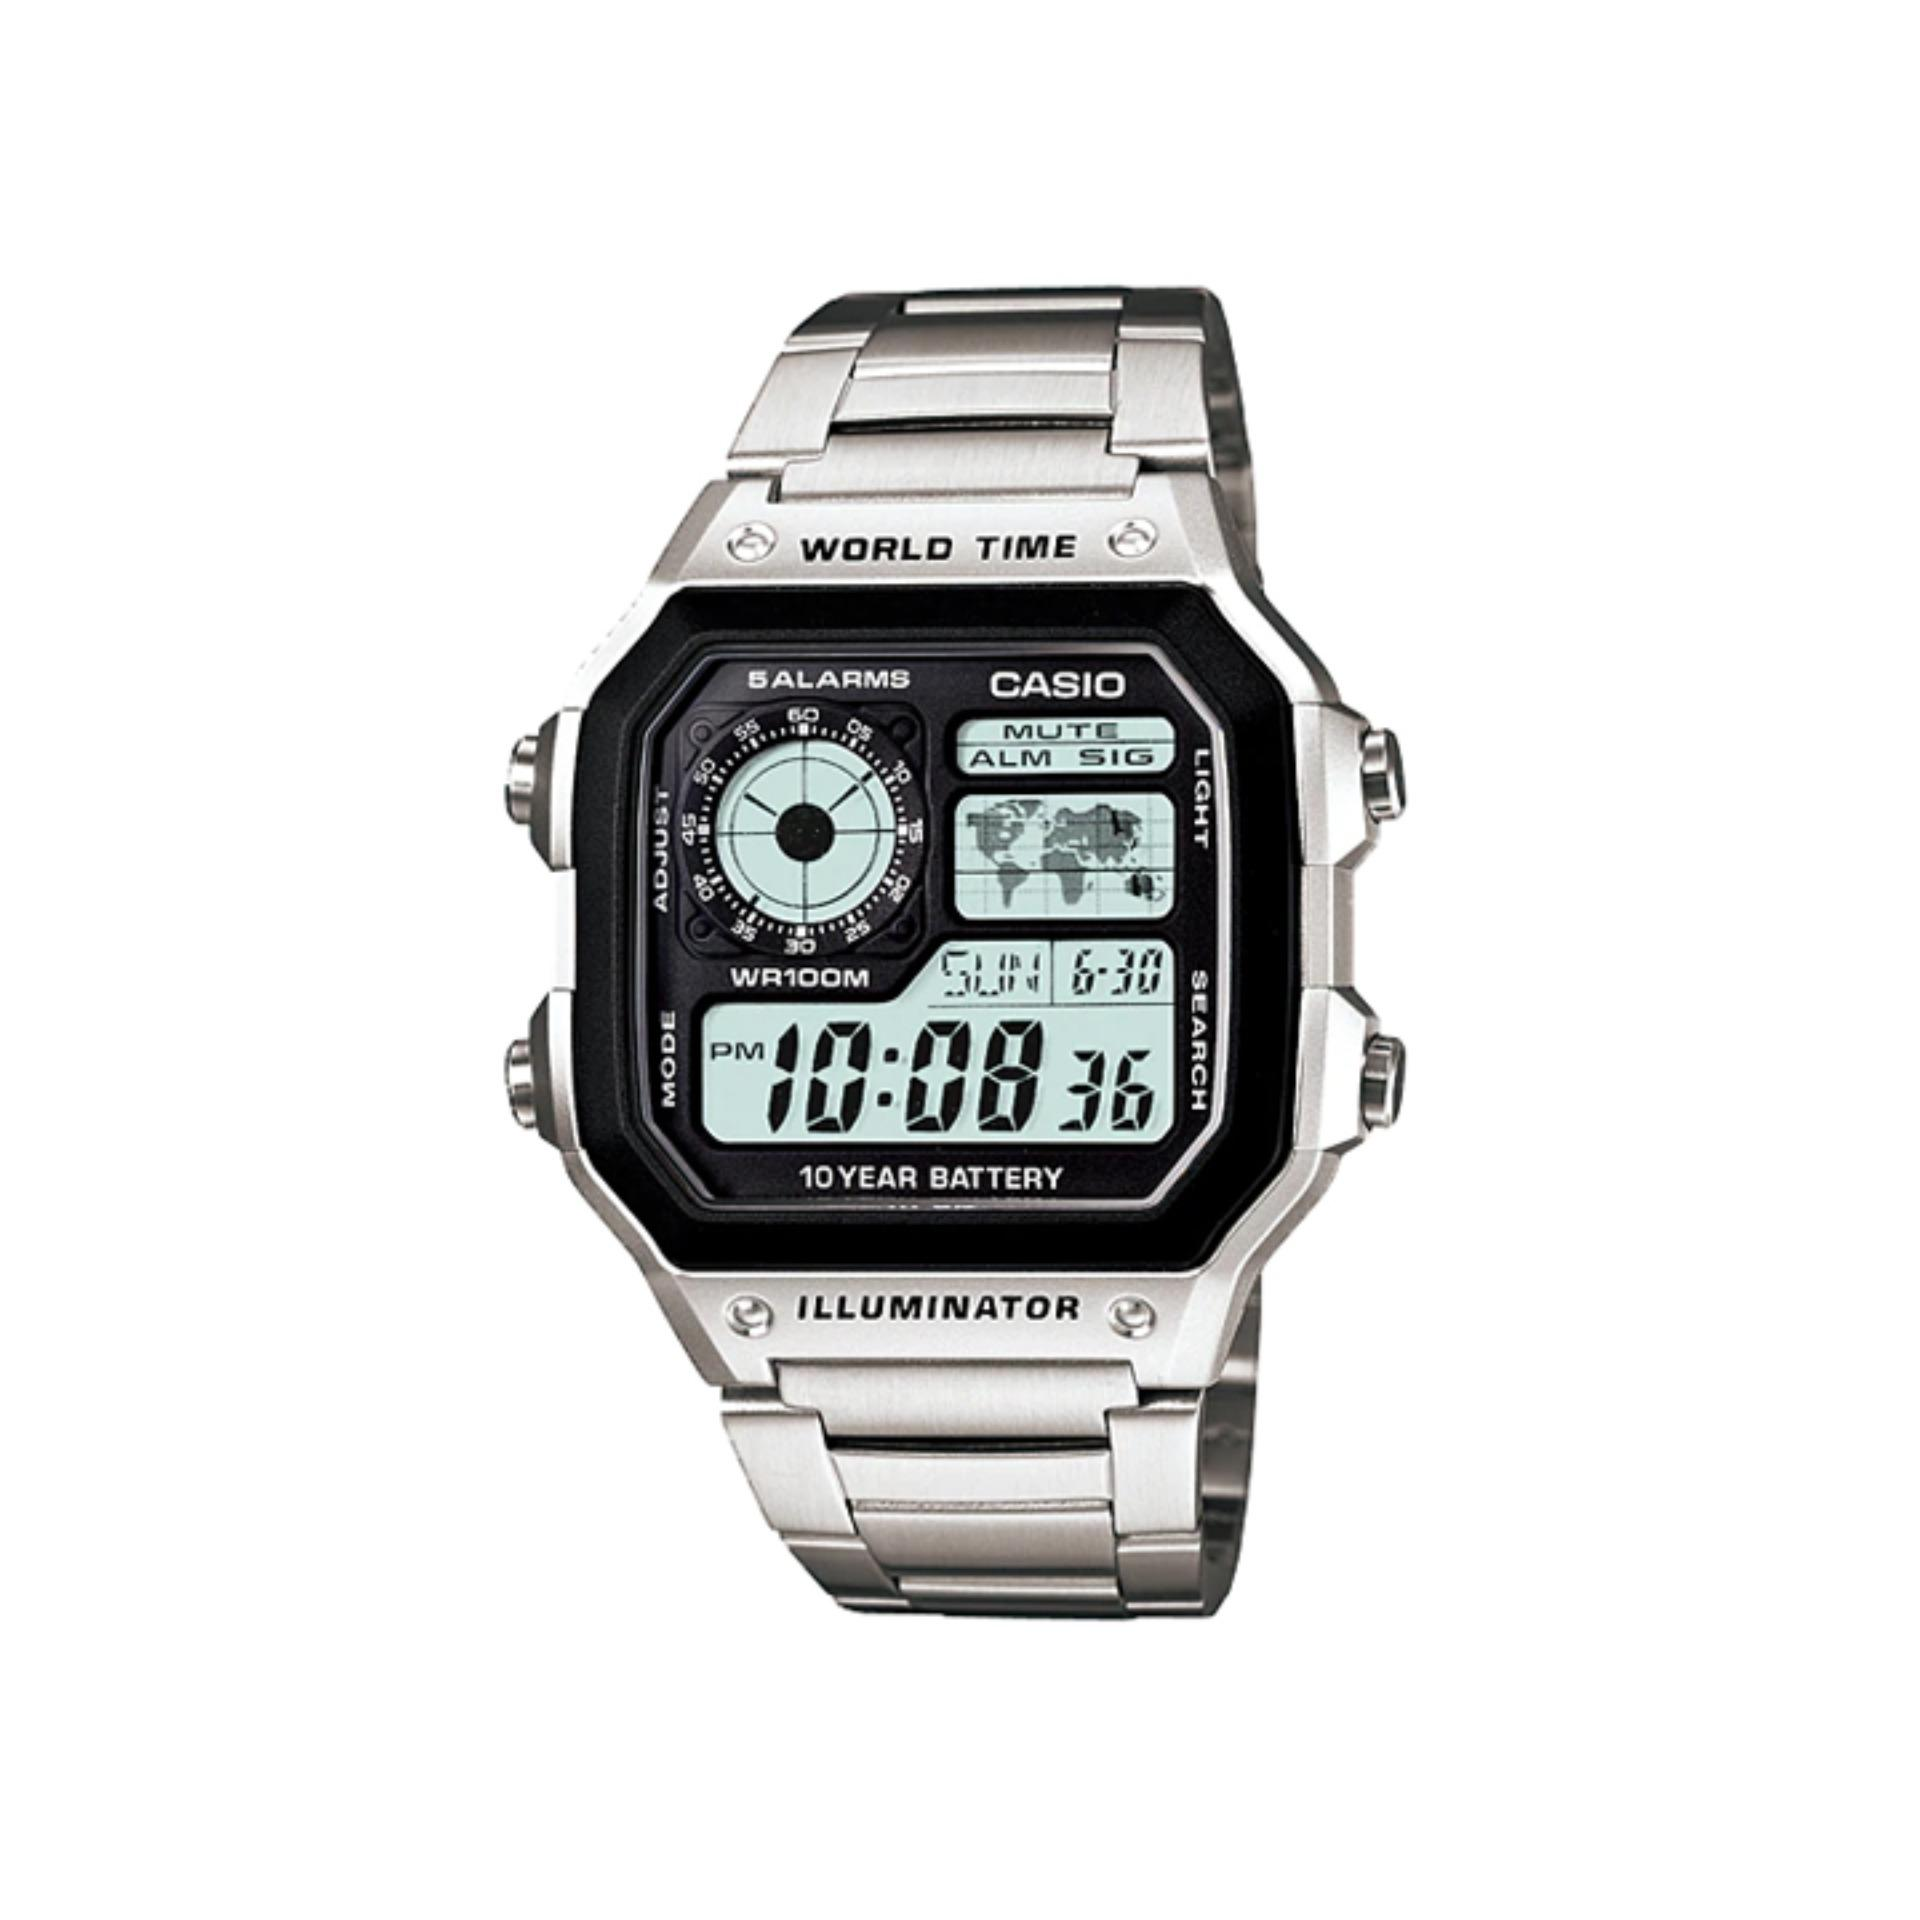 Casio Youth Men S Digital Stainless Steel Strap Watch Ae 1200whd 1avdf With 1 Year Warranty T1y